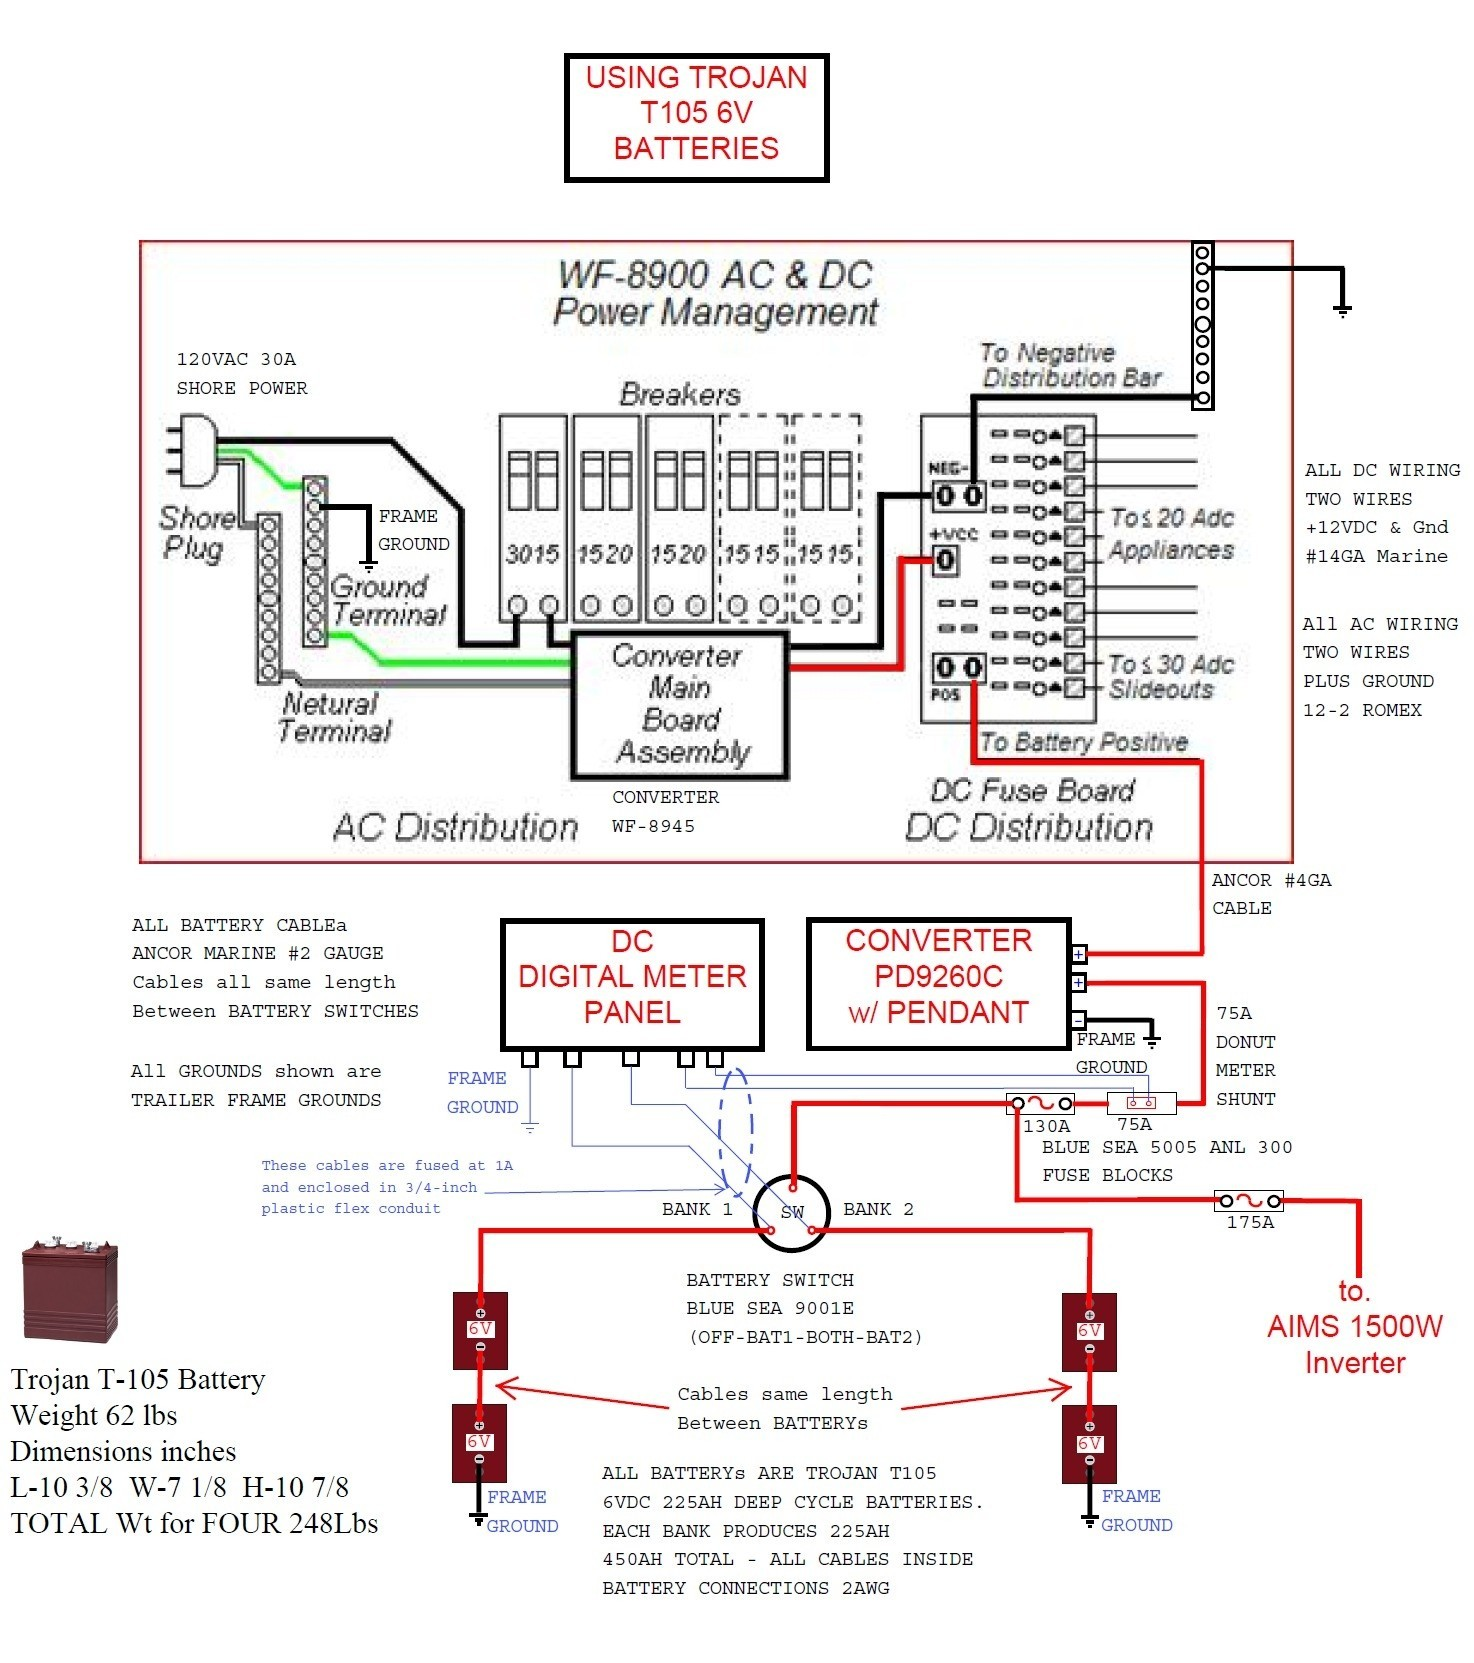 Lance Camper Wiring Diagram on ford 7.3 parts diagram, lance camper parts, lance camper connector, lance camper wiring plug for truck, camper plug diagram, 7 pin trailer plug diagram, color diagram, 7 cond trailer plug diagram, 12 volt camper wiring diagram, lance camper accessories, 7 pronge trailer connector diagram, camper light wiring diagram,